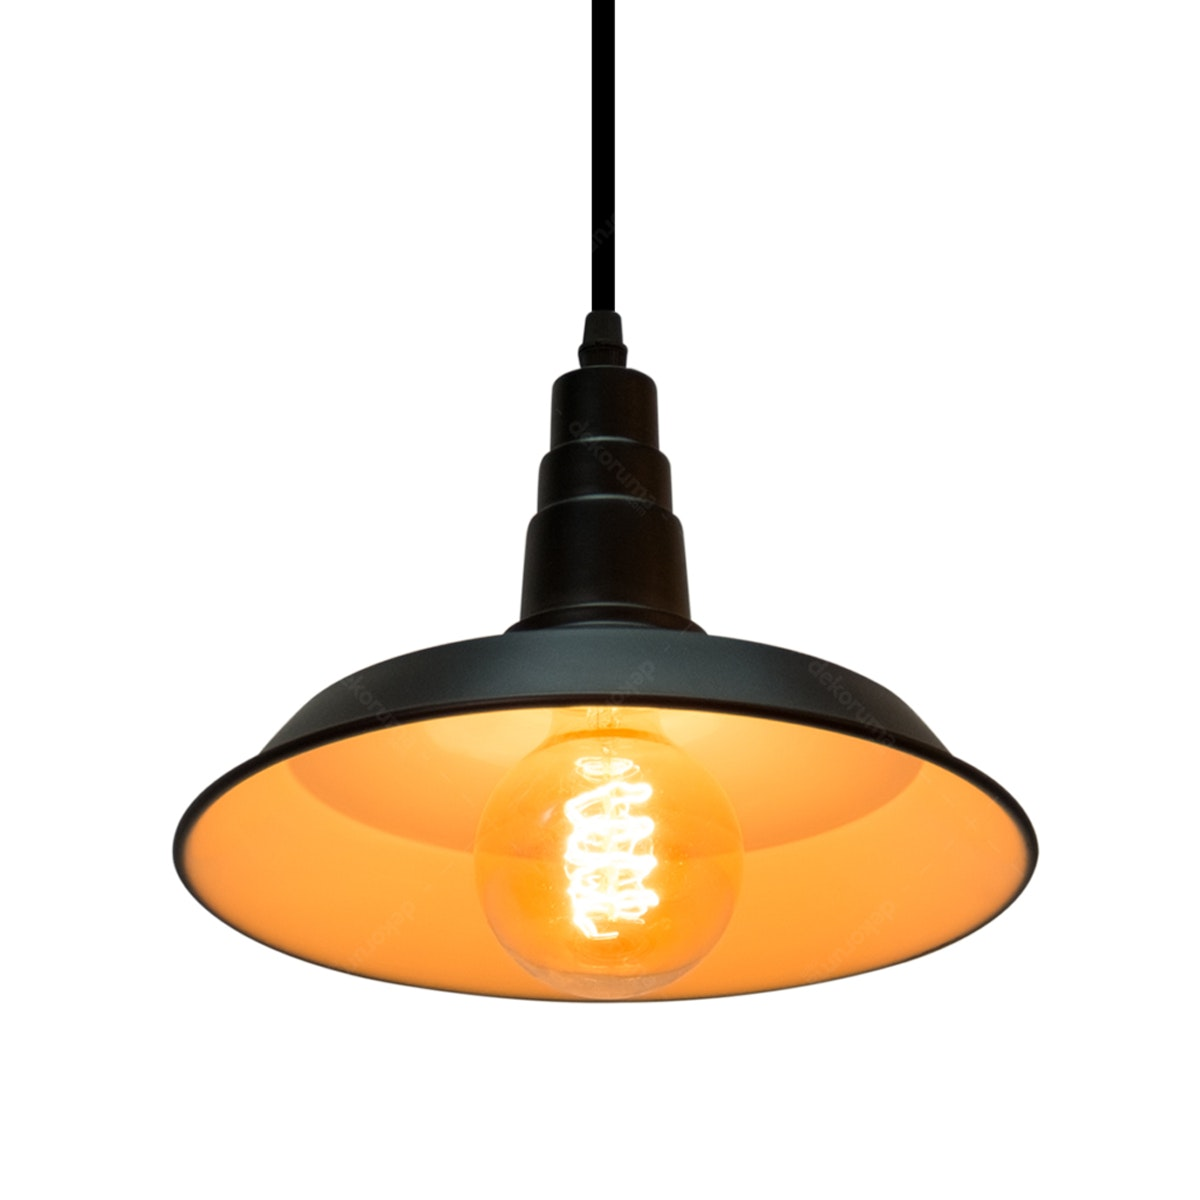 Lightology Lampu Gantung / Chandelier HS-8 BK